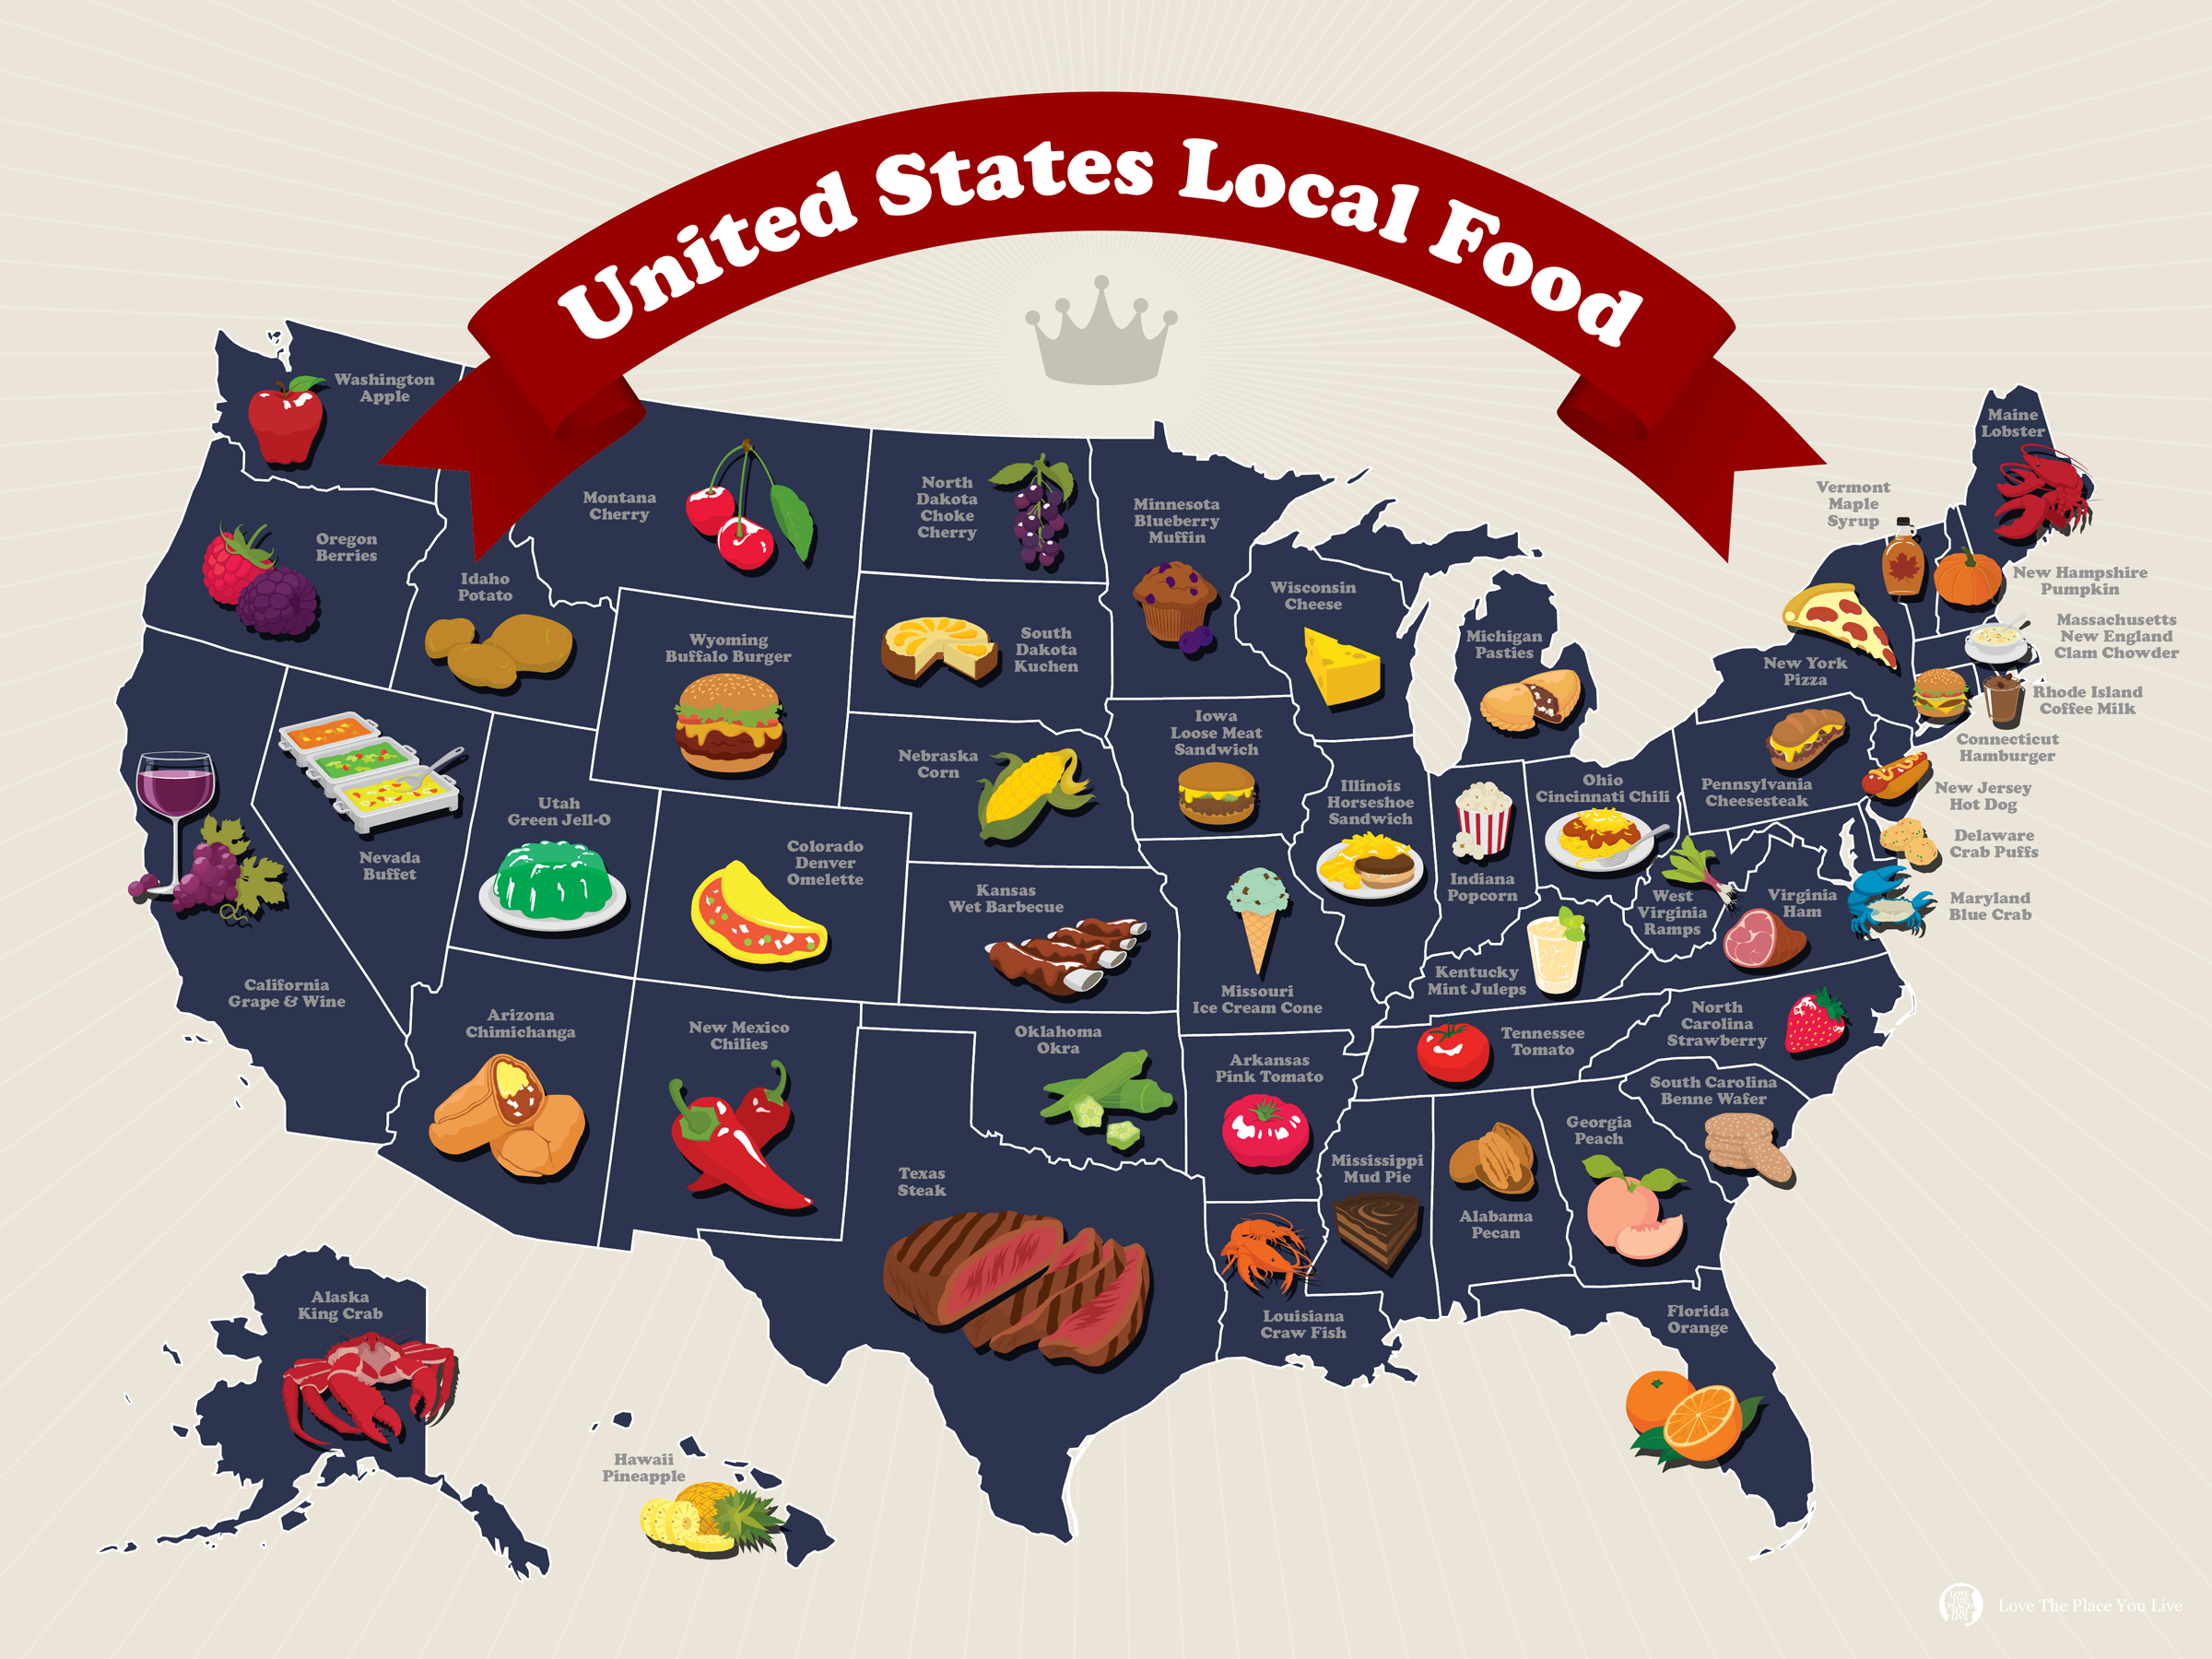 This United States Local Food Design Is One Of Ltpyl S